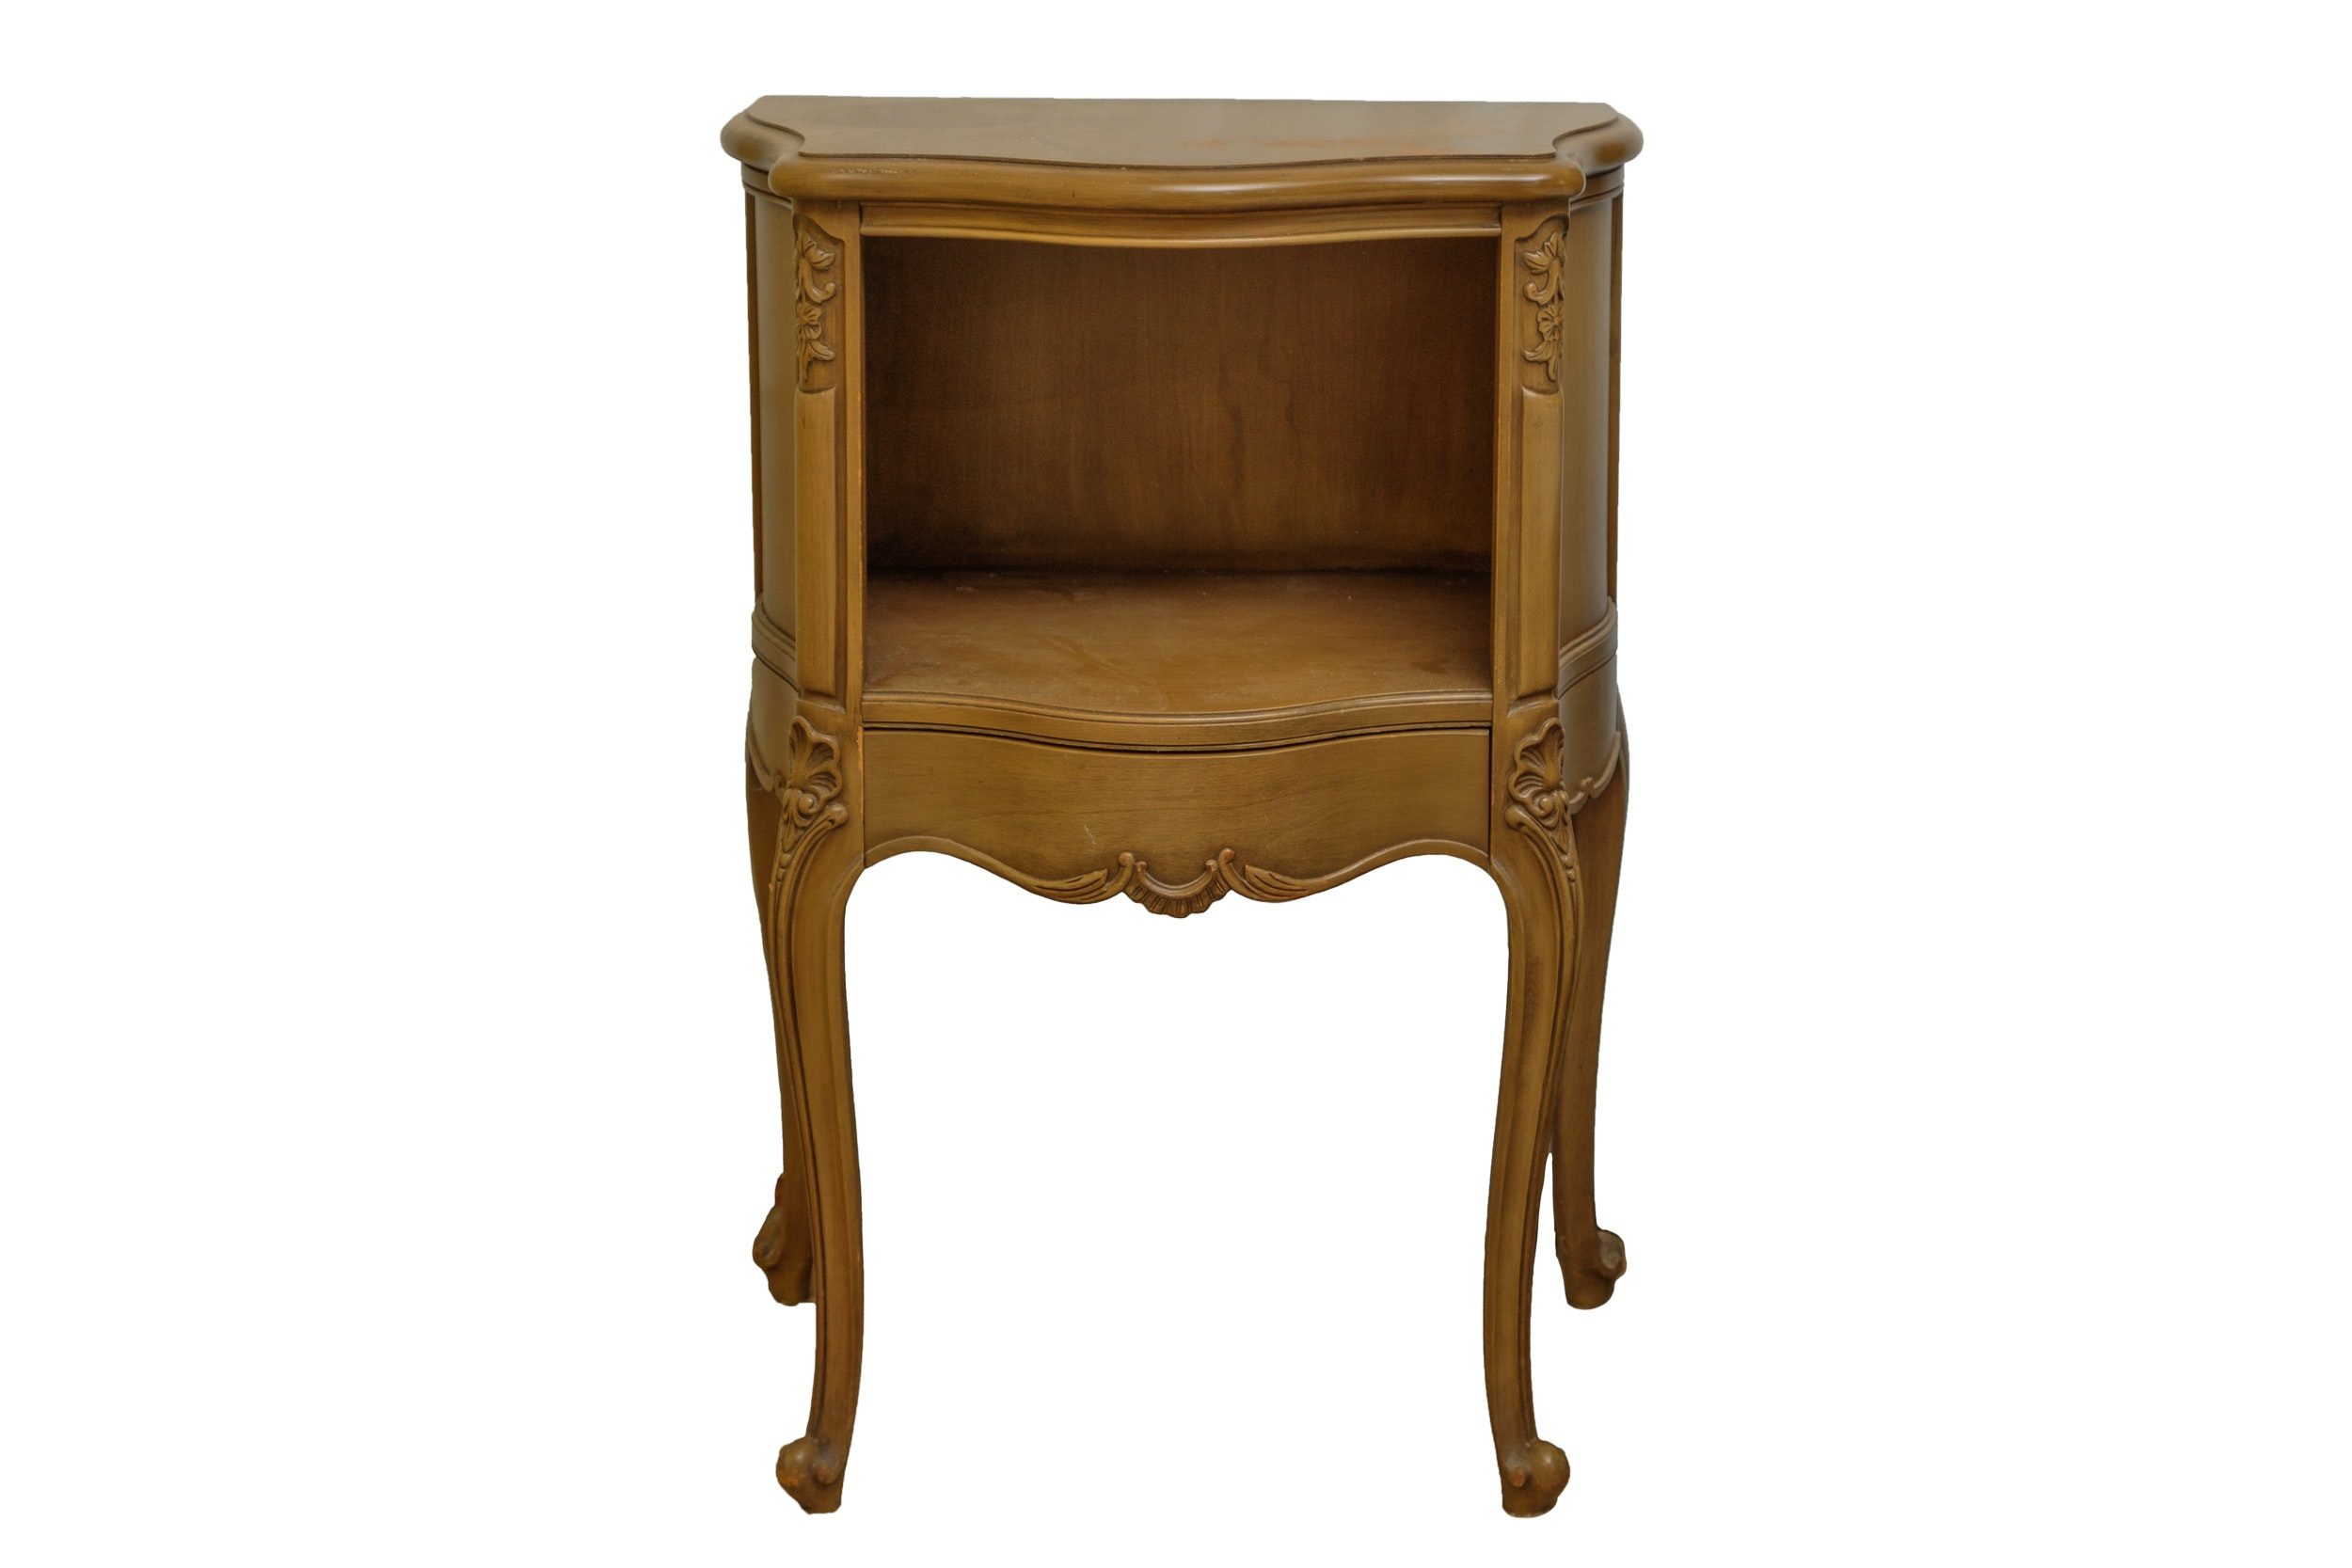 Vintage French Provincial Style Side Table by Drexel